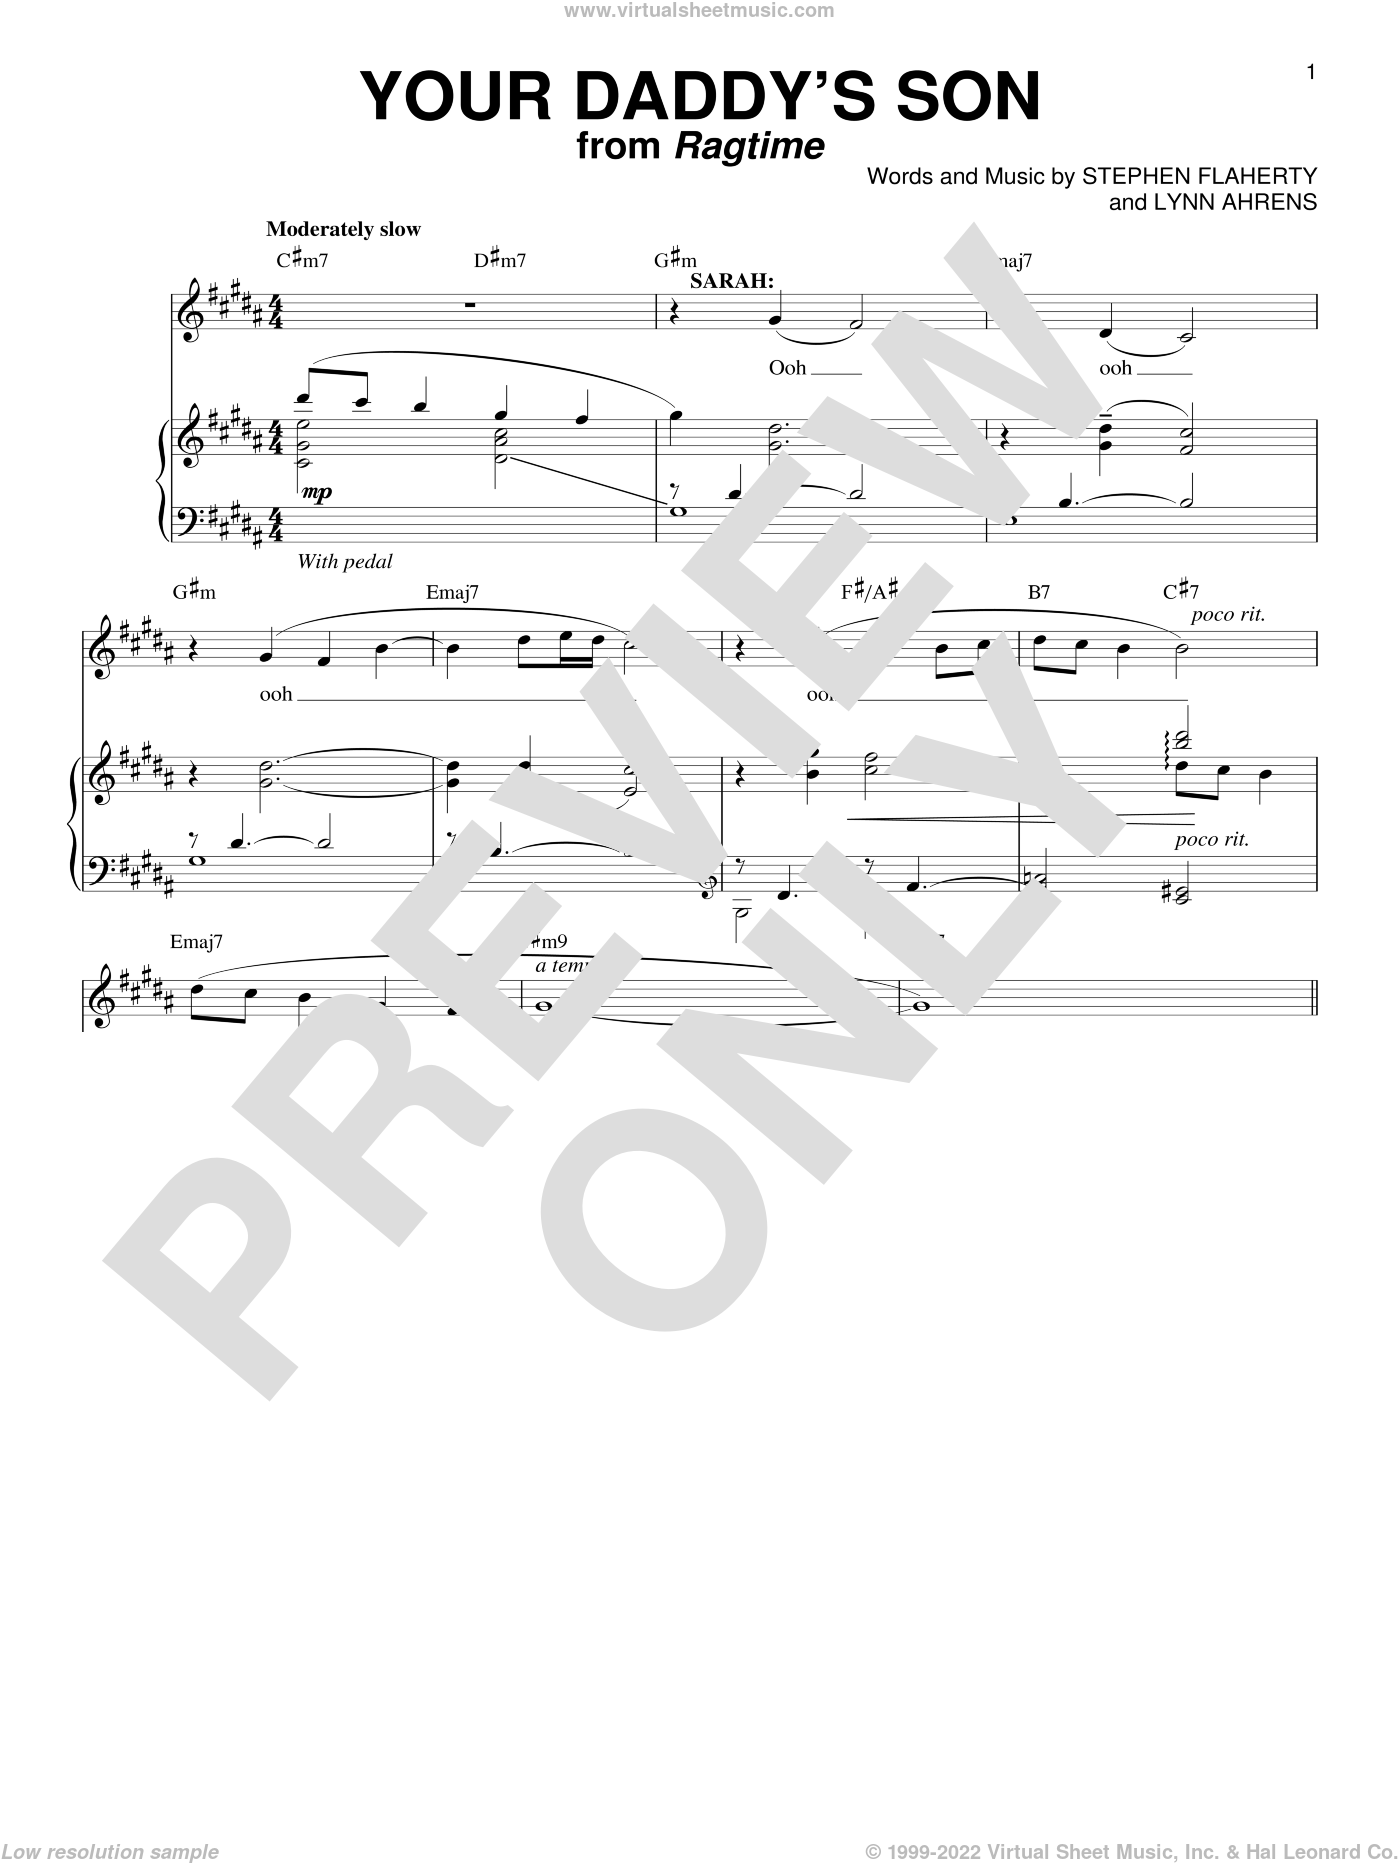 Your Daddy's Son sheet music for voice and piano by Stephen Flaherty, Lynn Ahrens and Richard Walters, intermediate skill level